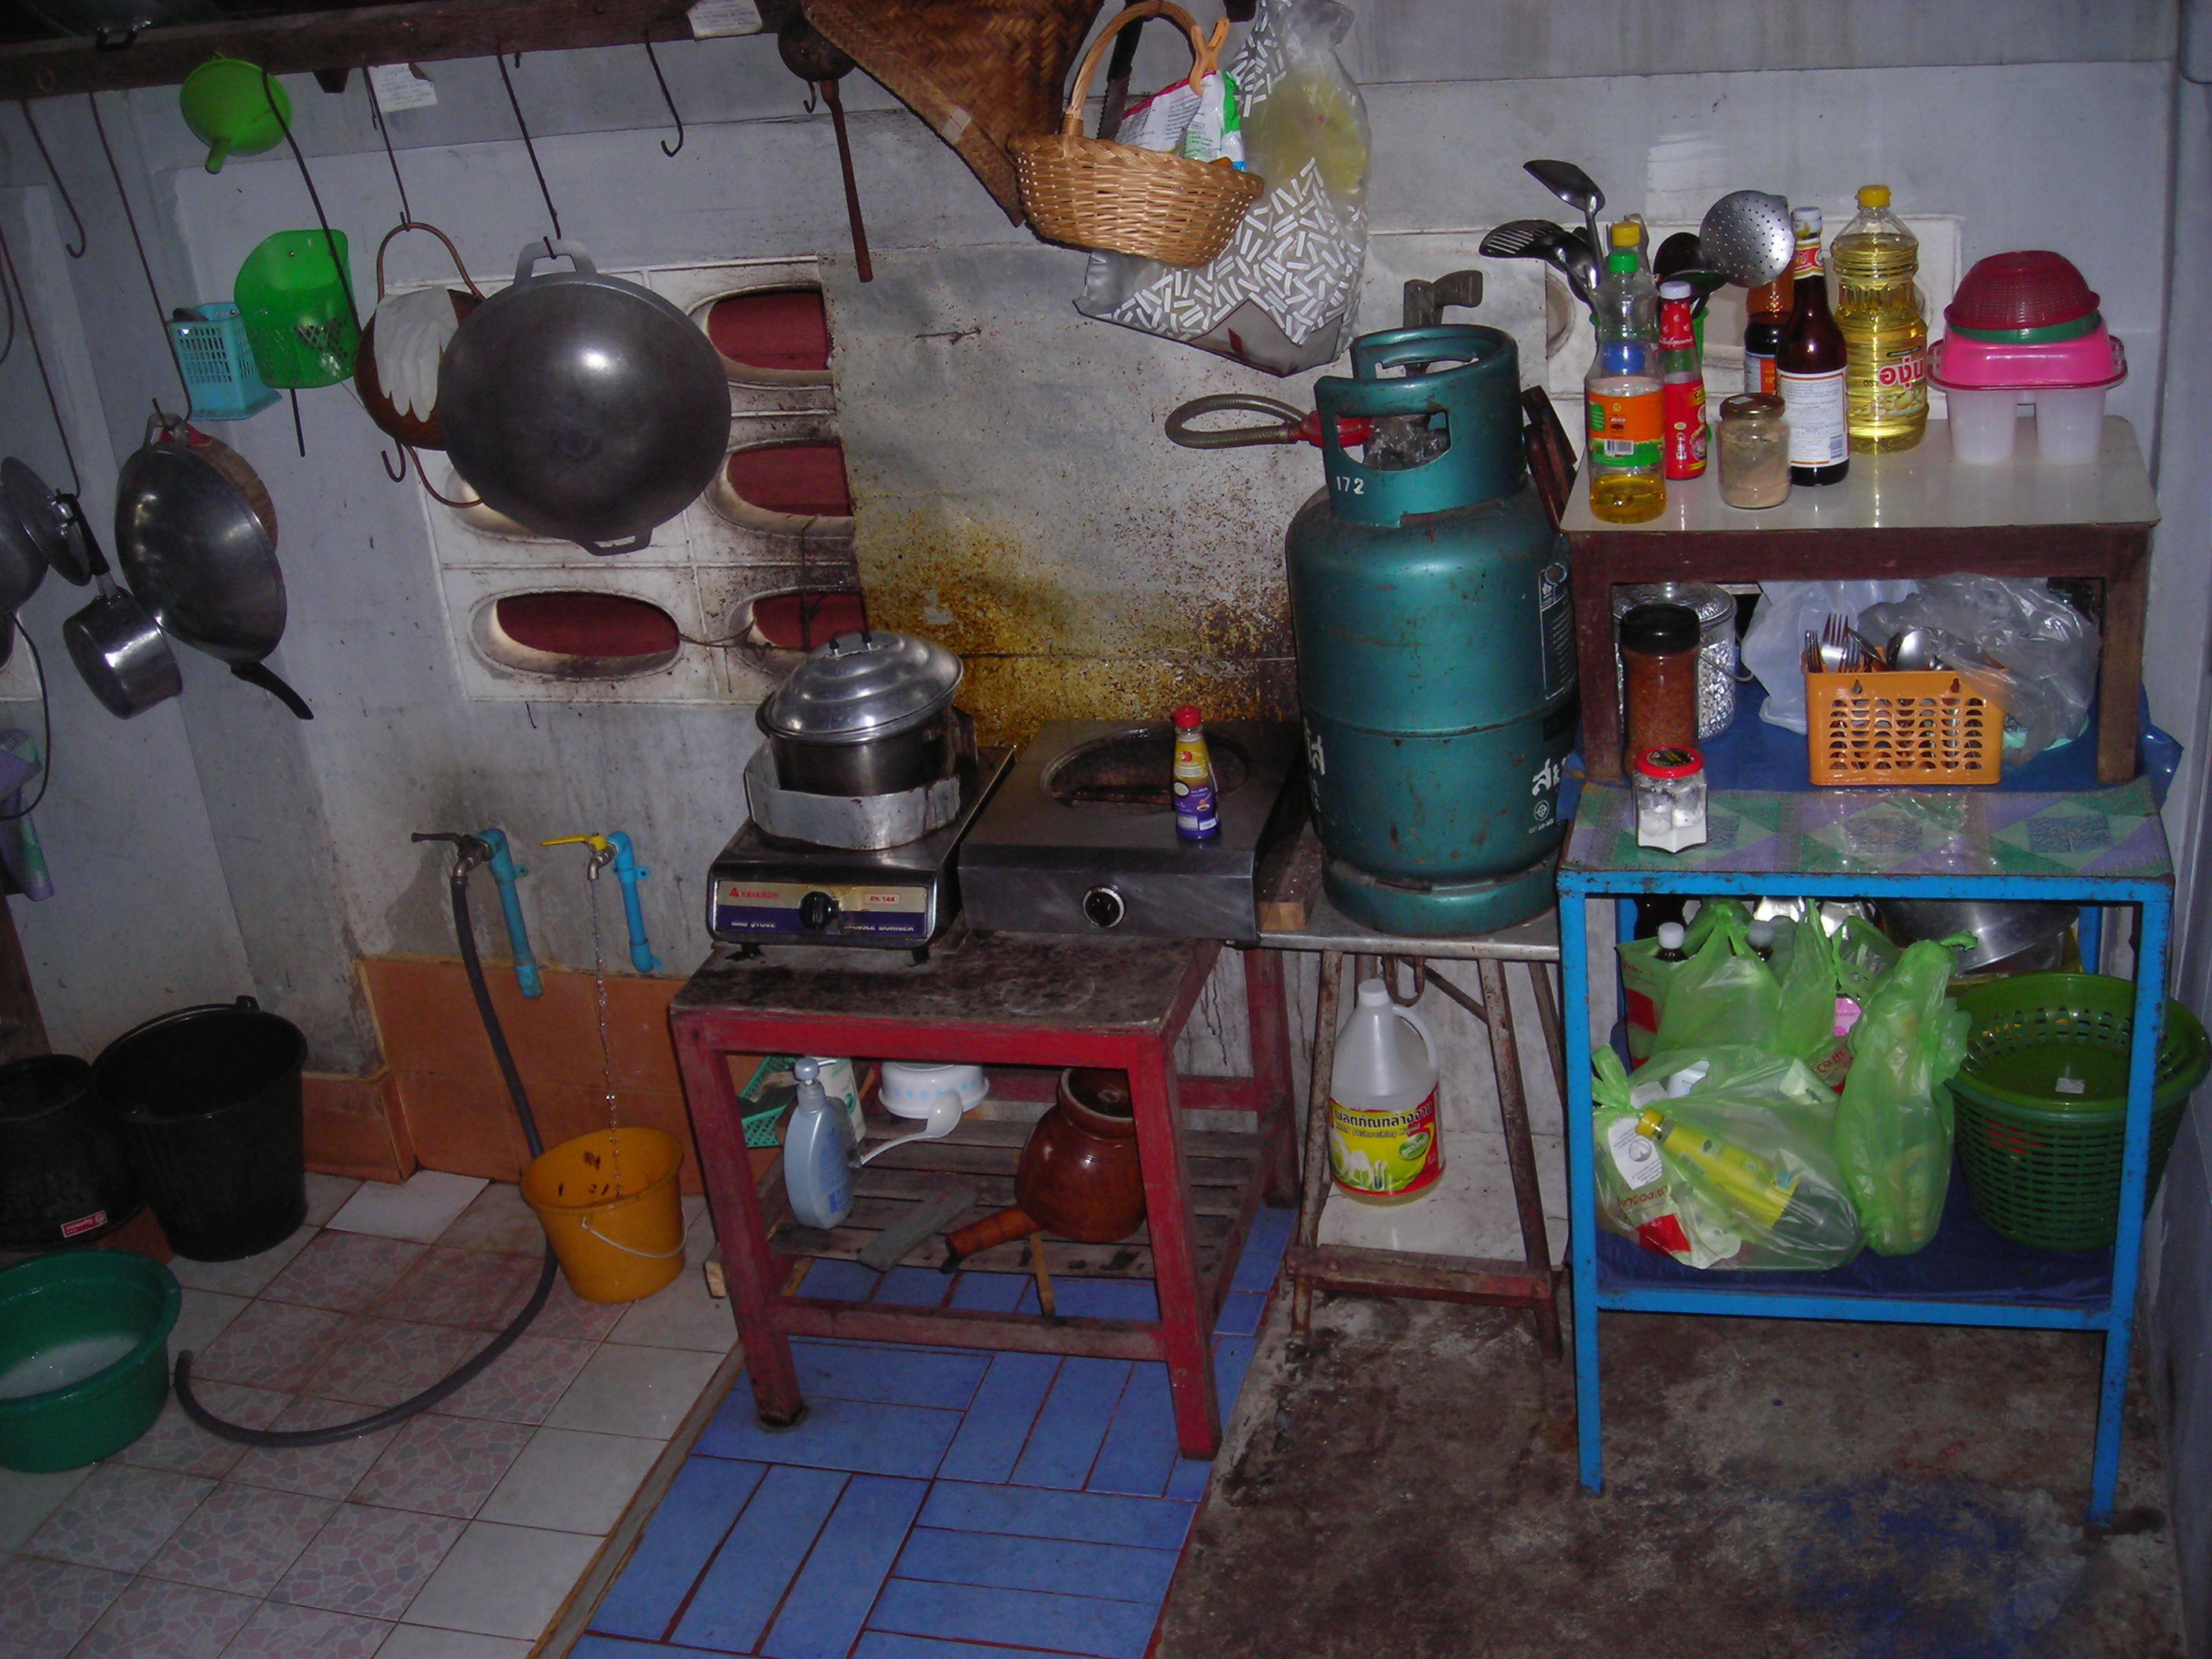 Thai Kitchen file:simple thai kitchen, private - wikimedia commons